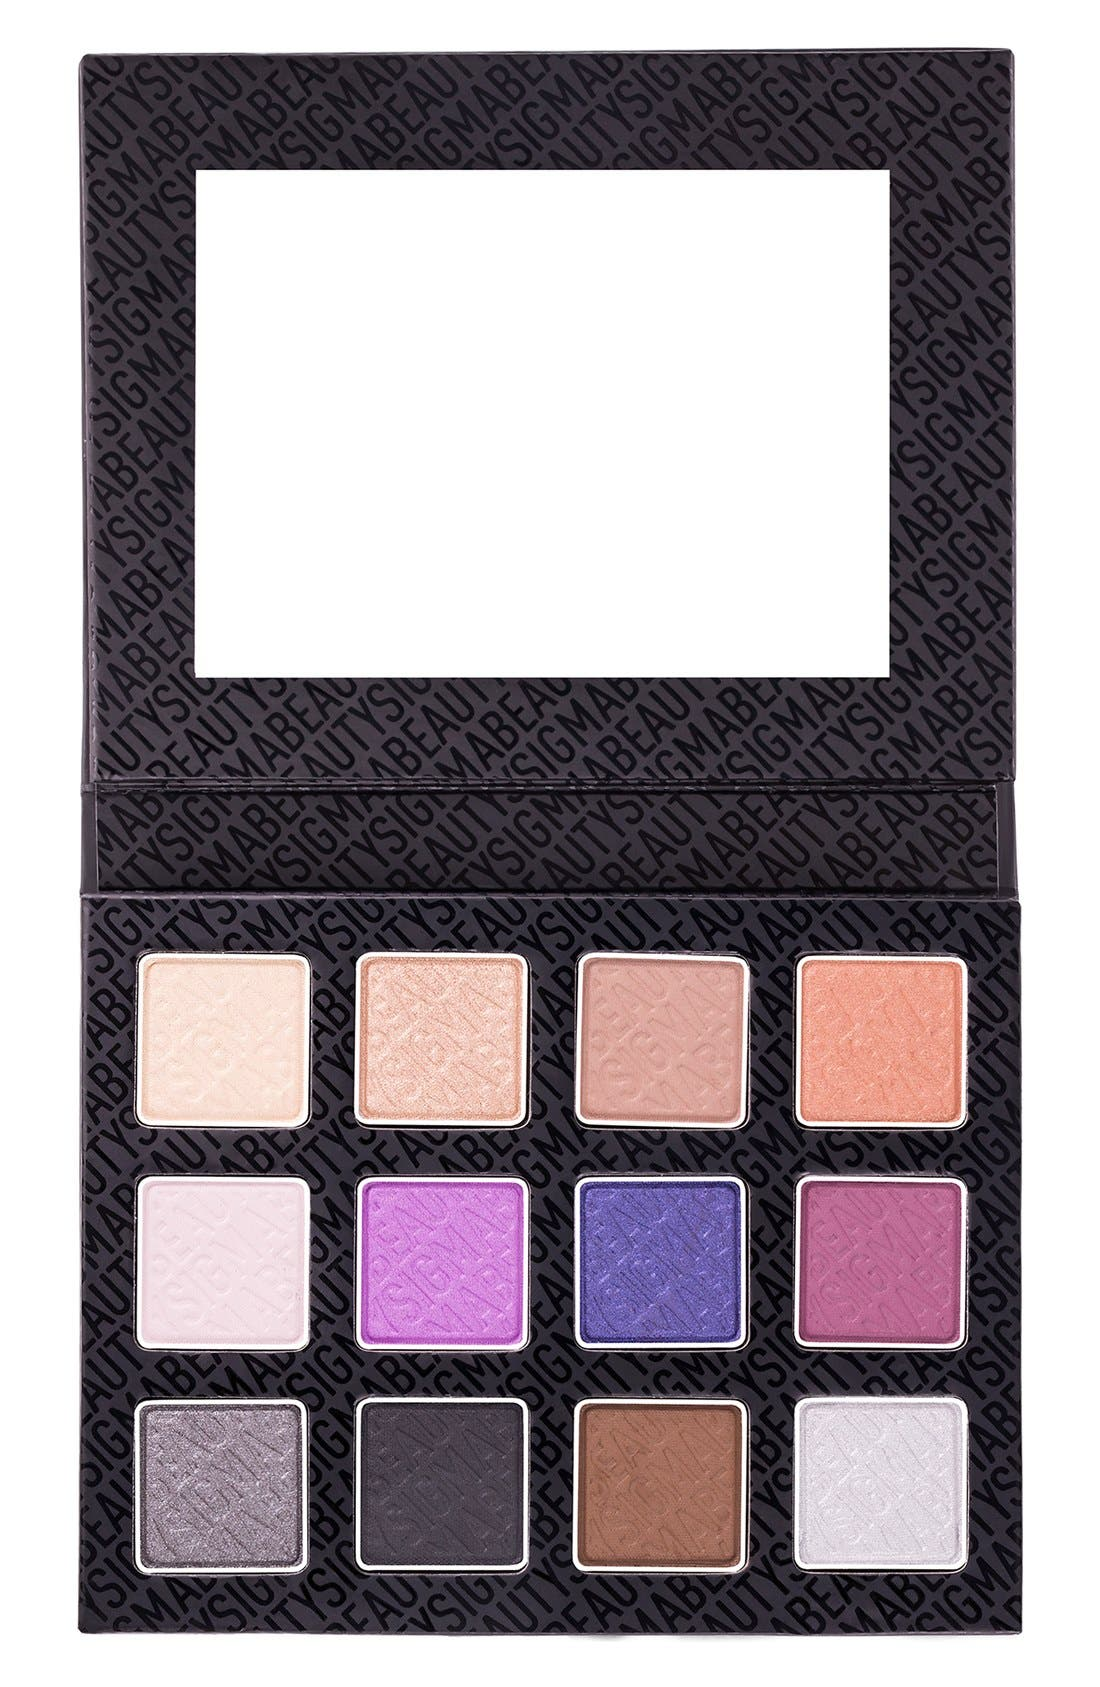 Sigma Beauty 'Nightlife' Eyeshadow Palette